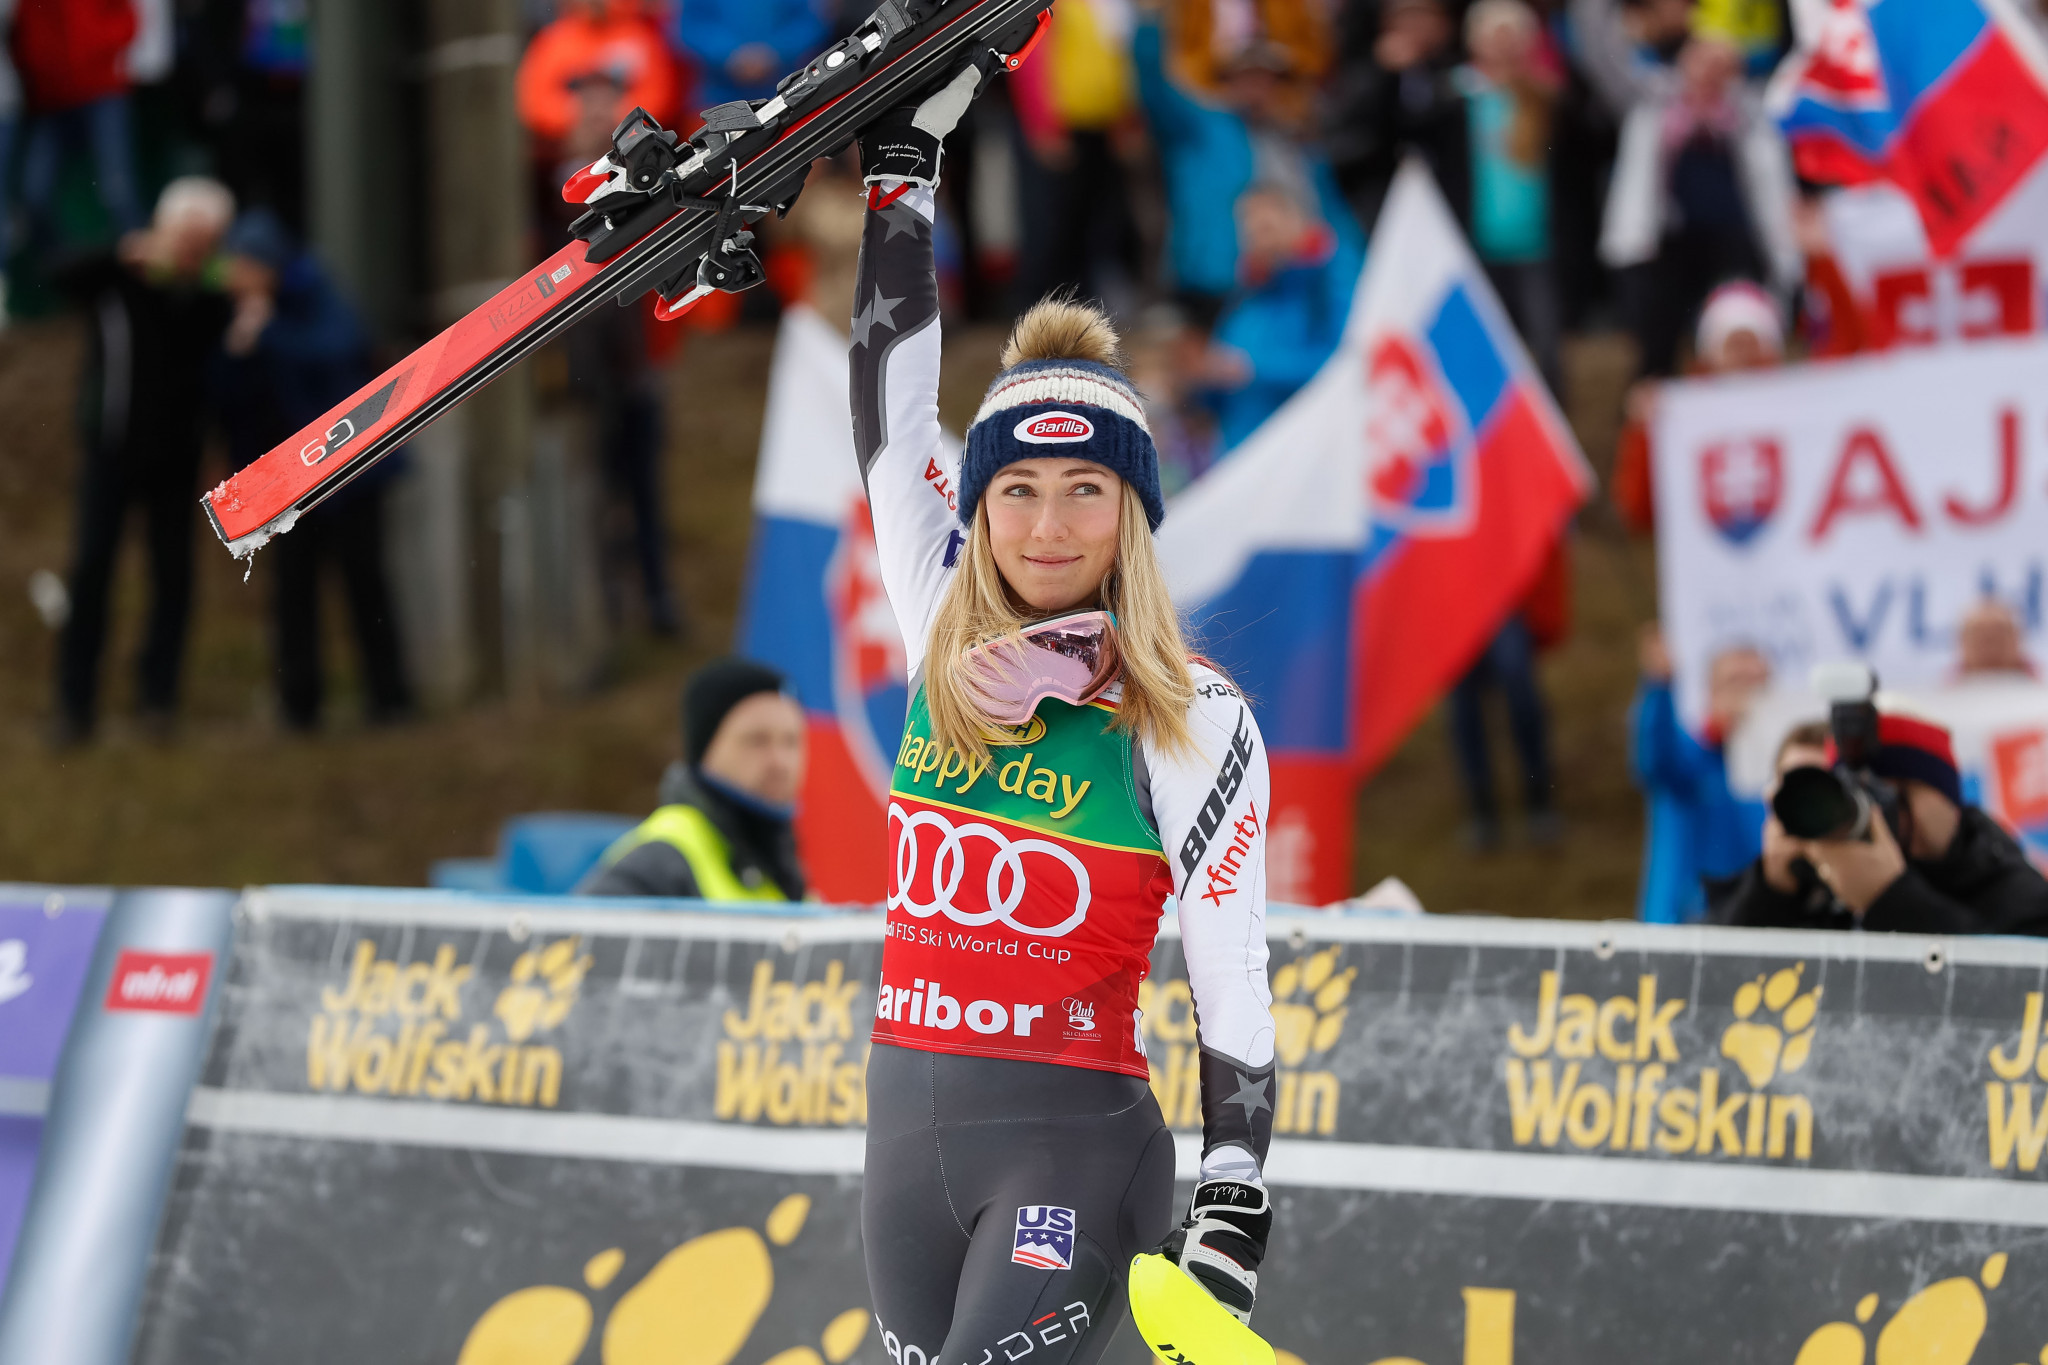 Mikaela Shiffrin was in commanding form in the last event before the World Championships ©Getty Images